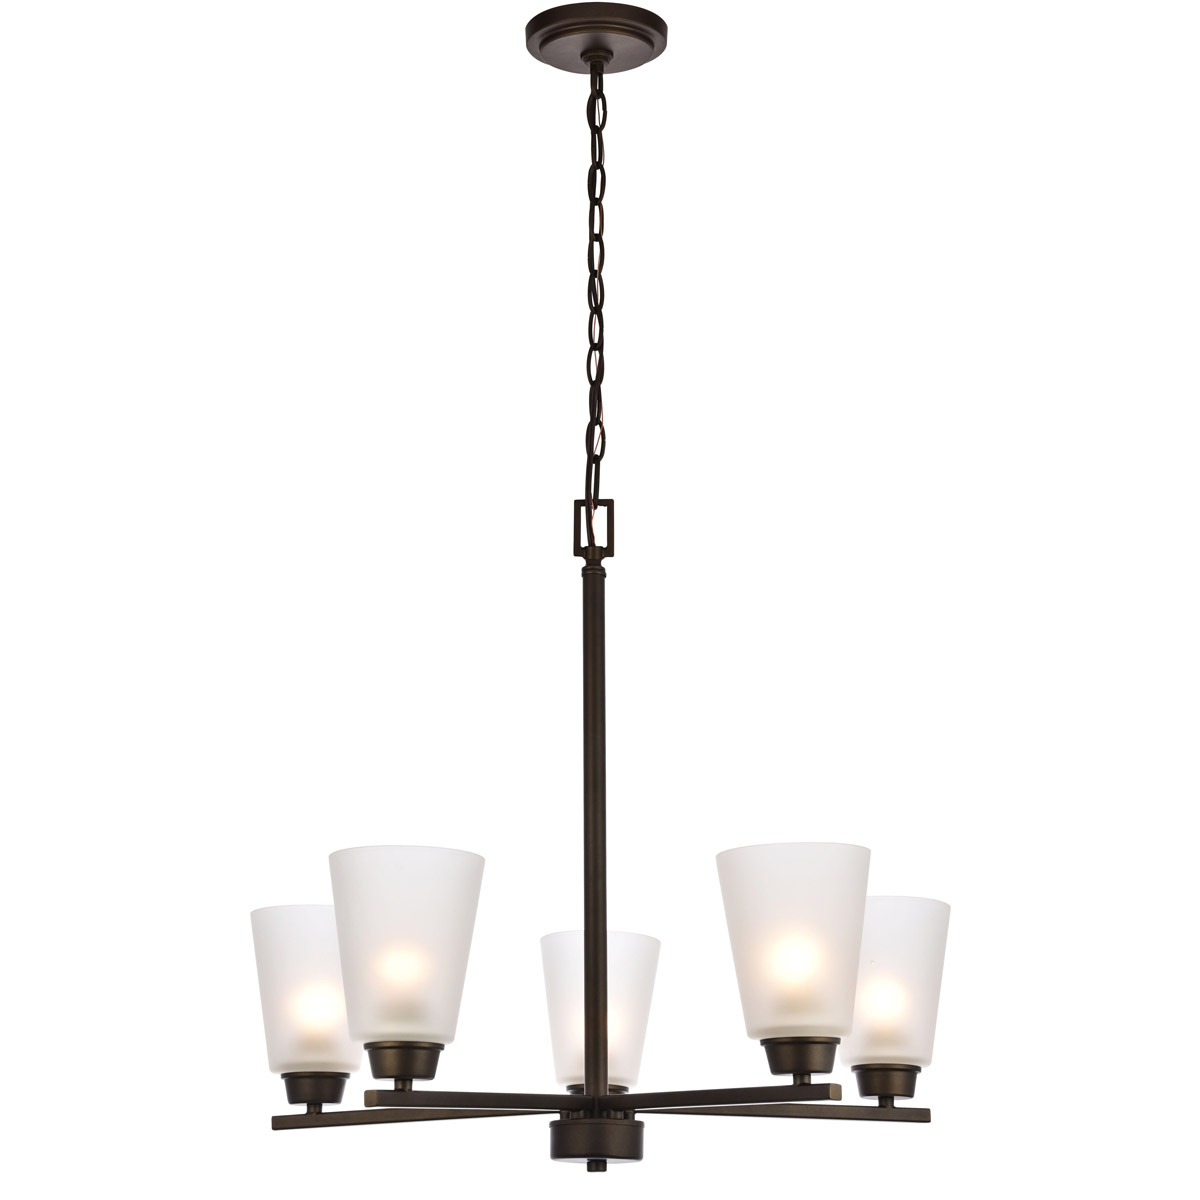 """5 Light 24"""" Glass Shades Oil Rubbed Bronze Dining Living Regarding Preferred Thresa 5 Light Shaded Chandeliers (View 22 of 25)"""